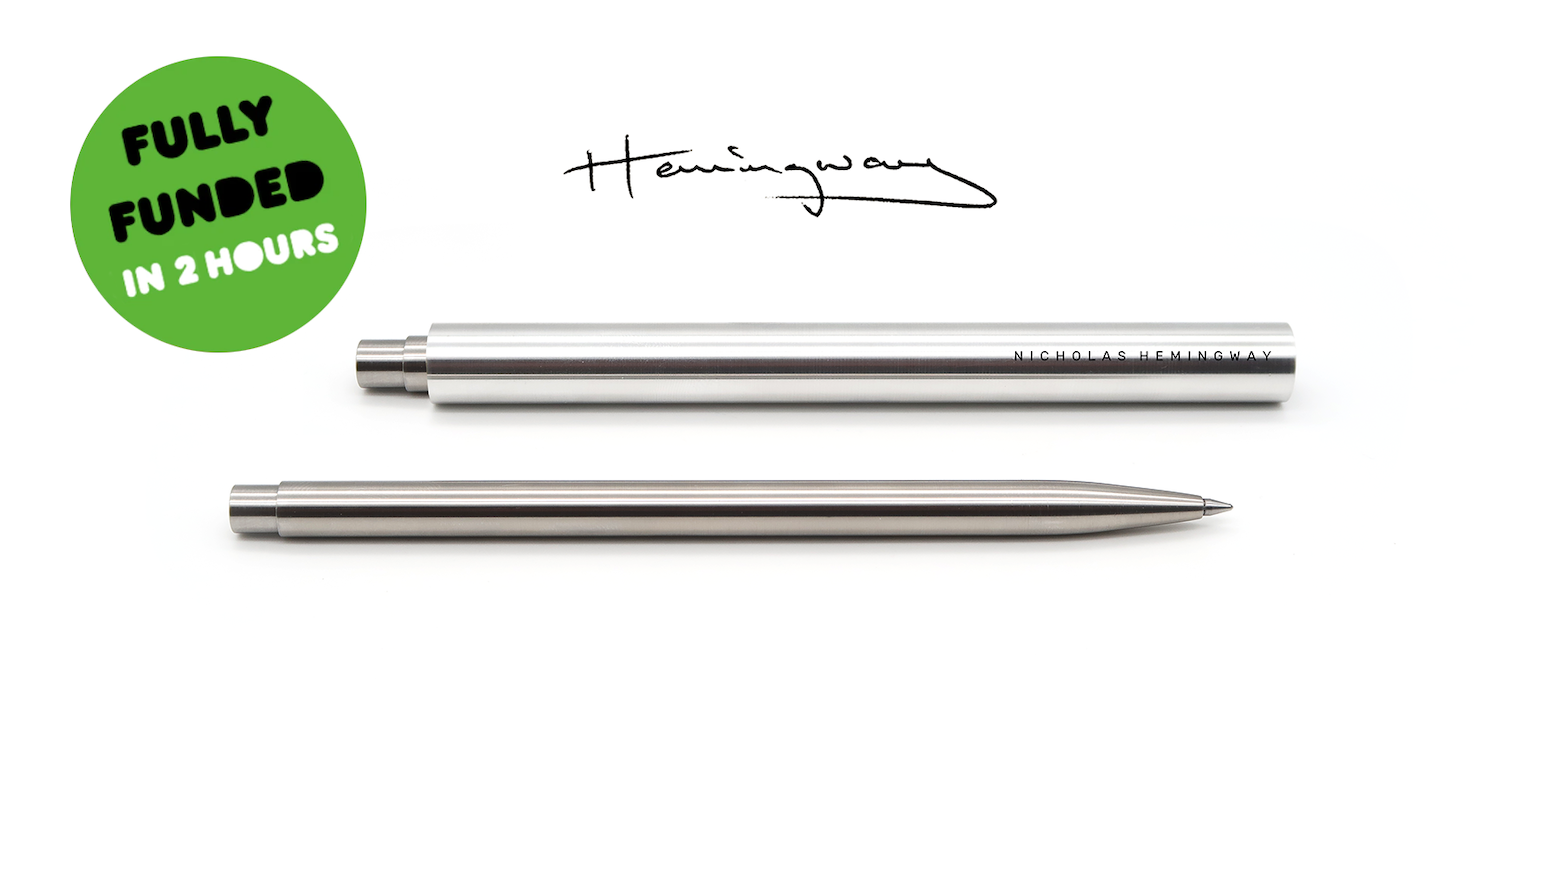 A beautifully over-engineered pen. Hand-built to last for life. Designed for engineers, architects and creatives by Nicholas Hemingway